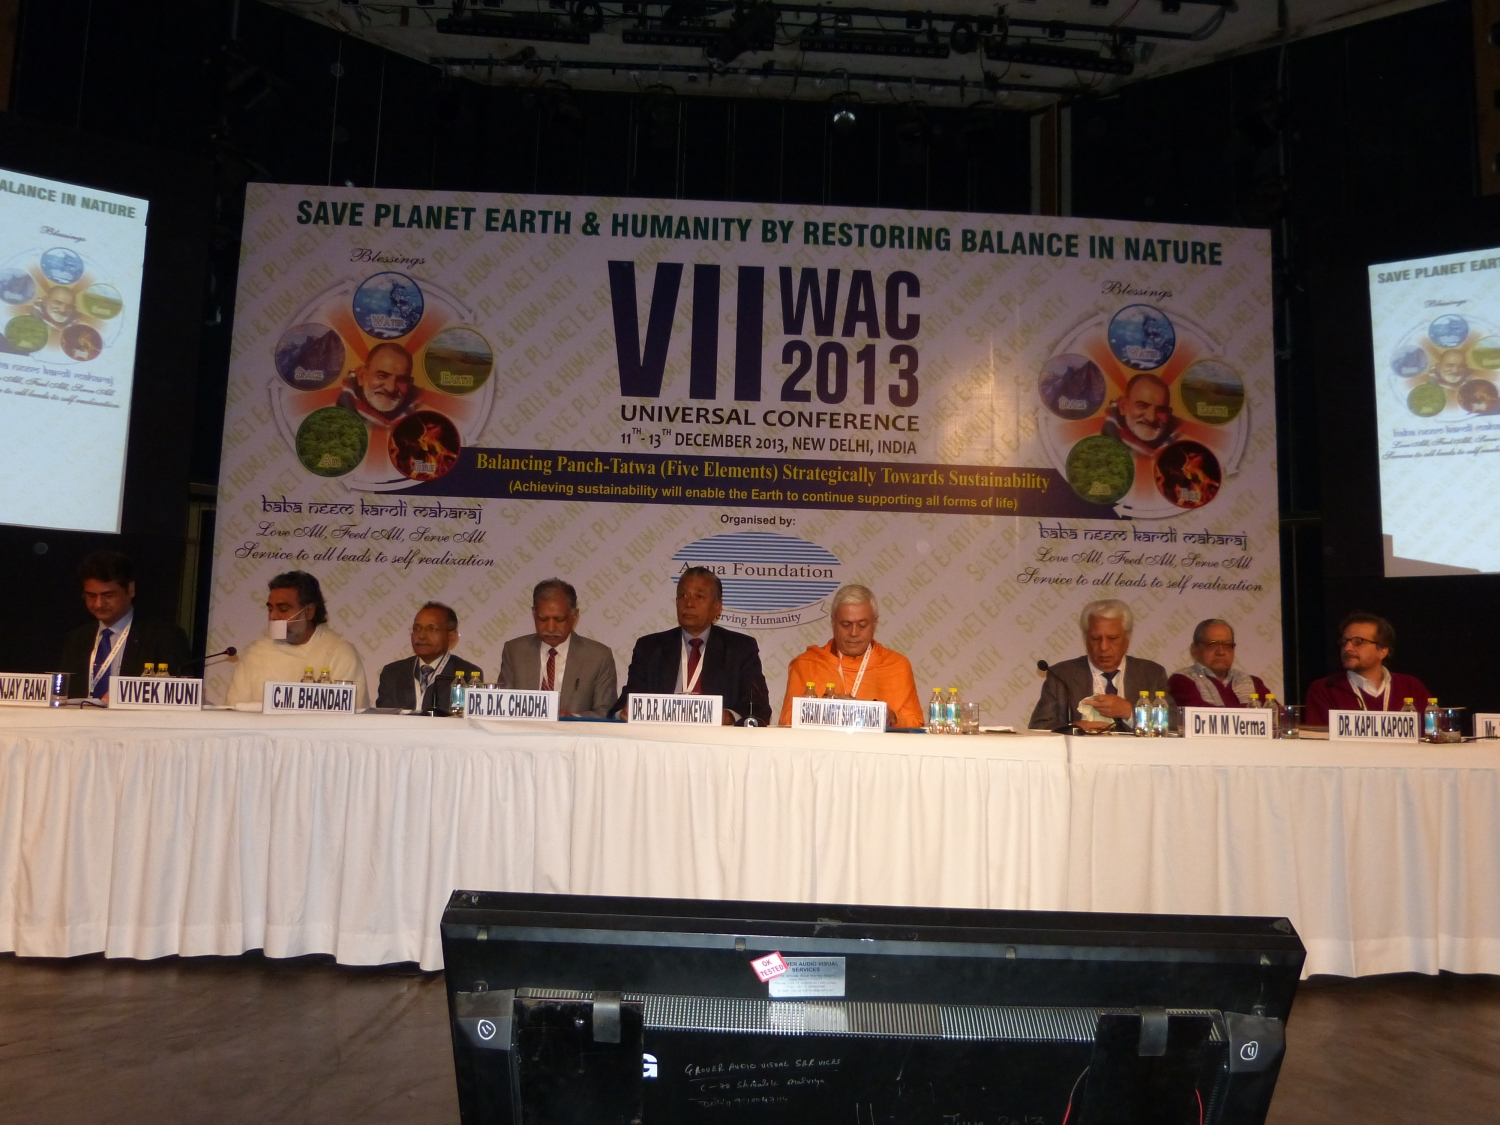 VII World Aqua Congress - New Dillī - 2013